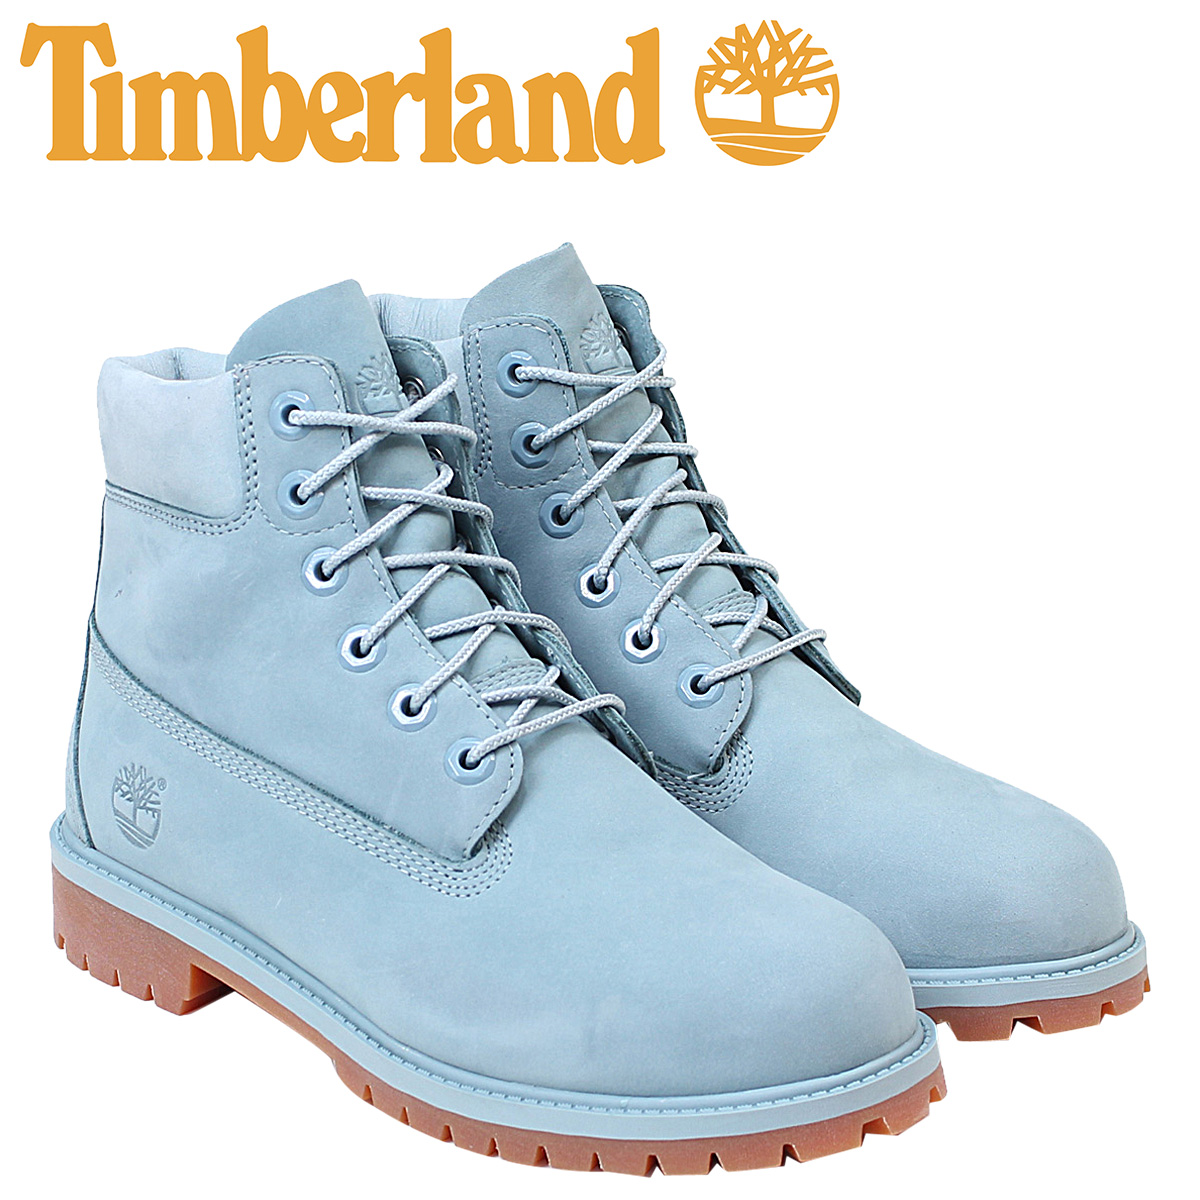 Sugar Online Shop | Rakuten Global Market: Timberland Lady's 6 inches Timberland  boots 6INCHI JUNIOR 6-INCH PREMIUM WATERPROOF BOOTS A1KQ4 waterproofing ...